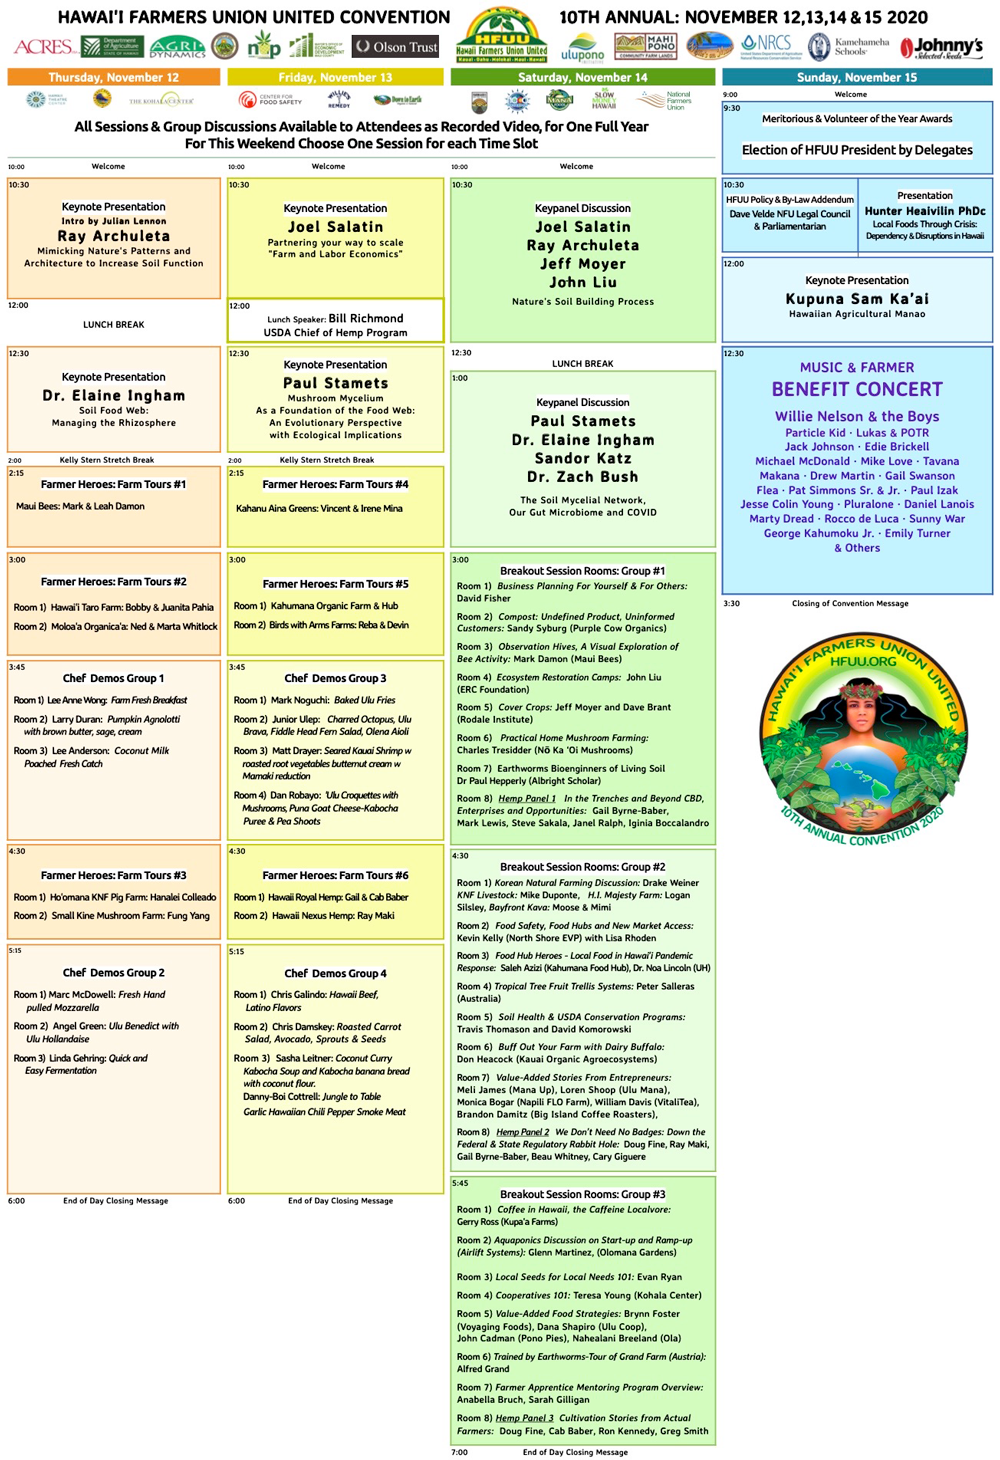 CLICK ON THE IMAGE TO VIEW - The HFUU 10th Annual Convention Schedule Downloadable PDF